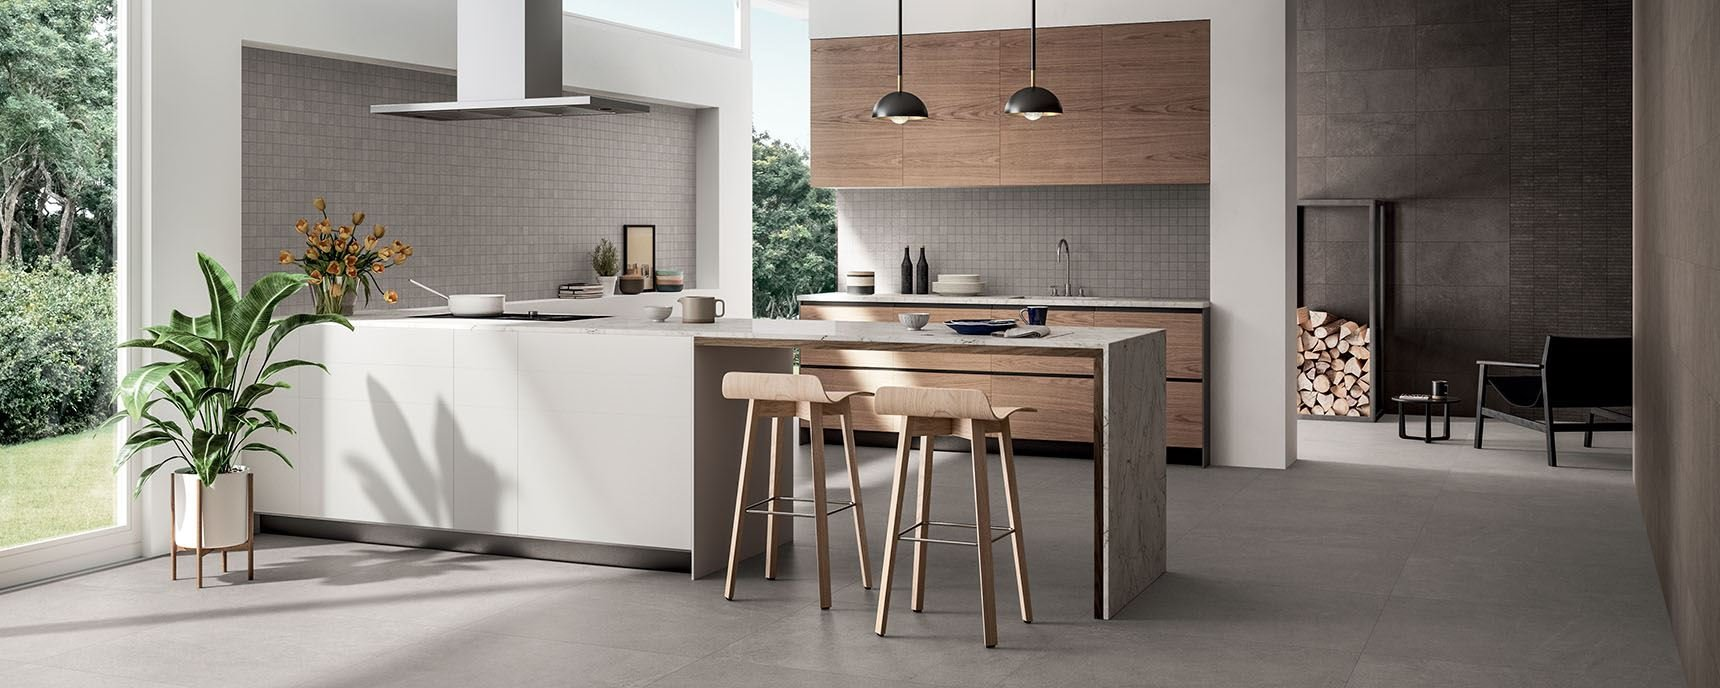 A modern kitchen: what are its characteristics?